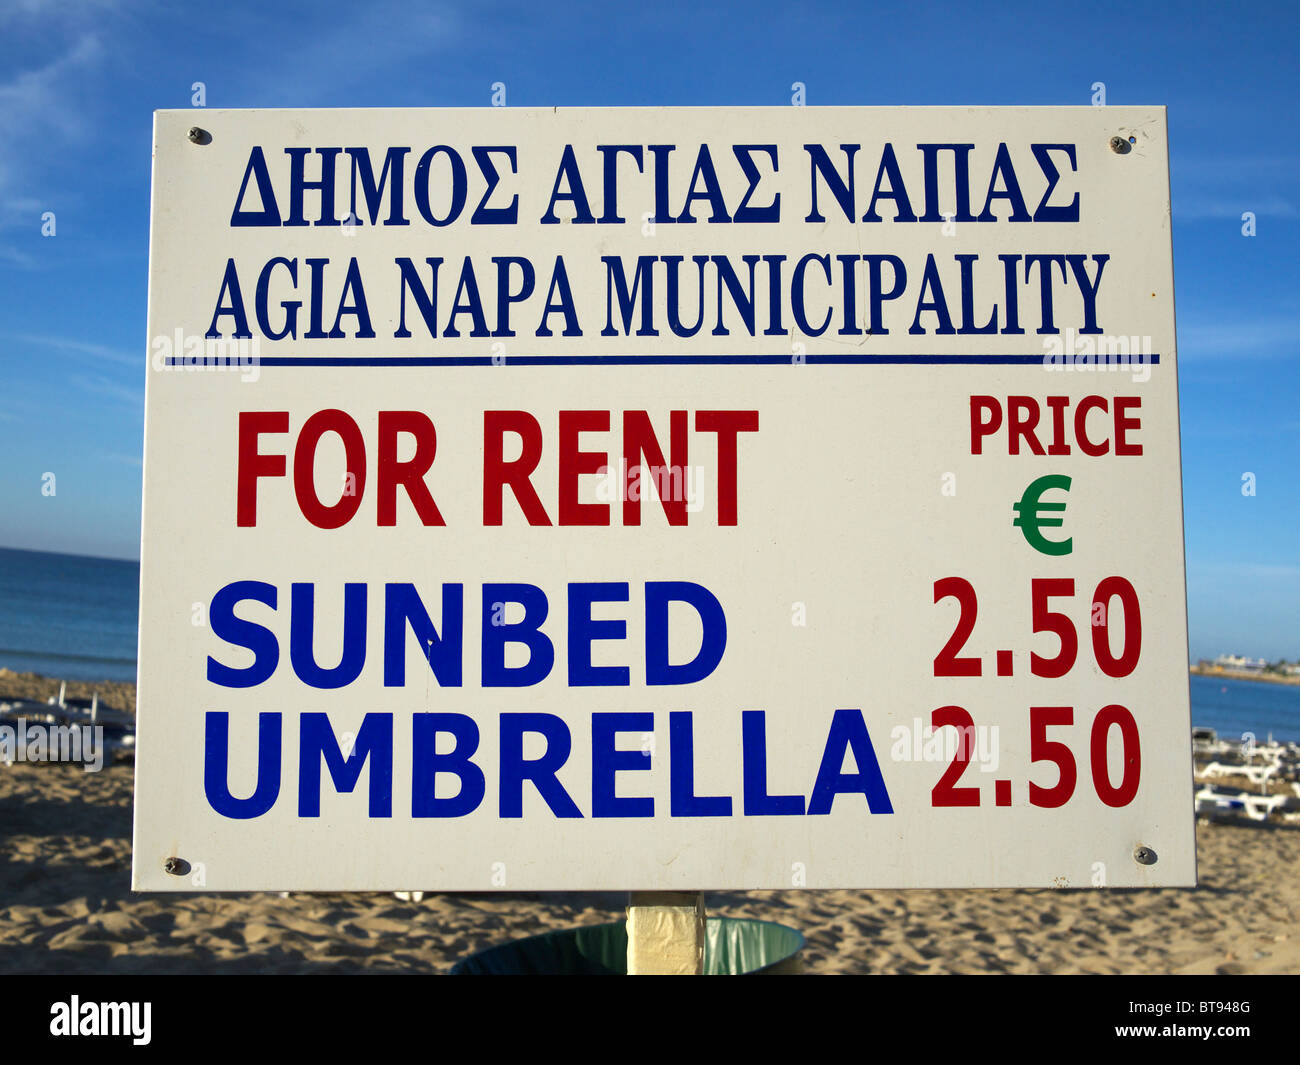 Sunbed and umbrella rent sign Ayia Napa Cyprus - Stock Image